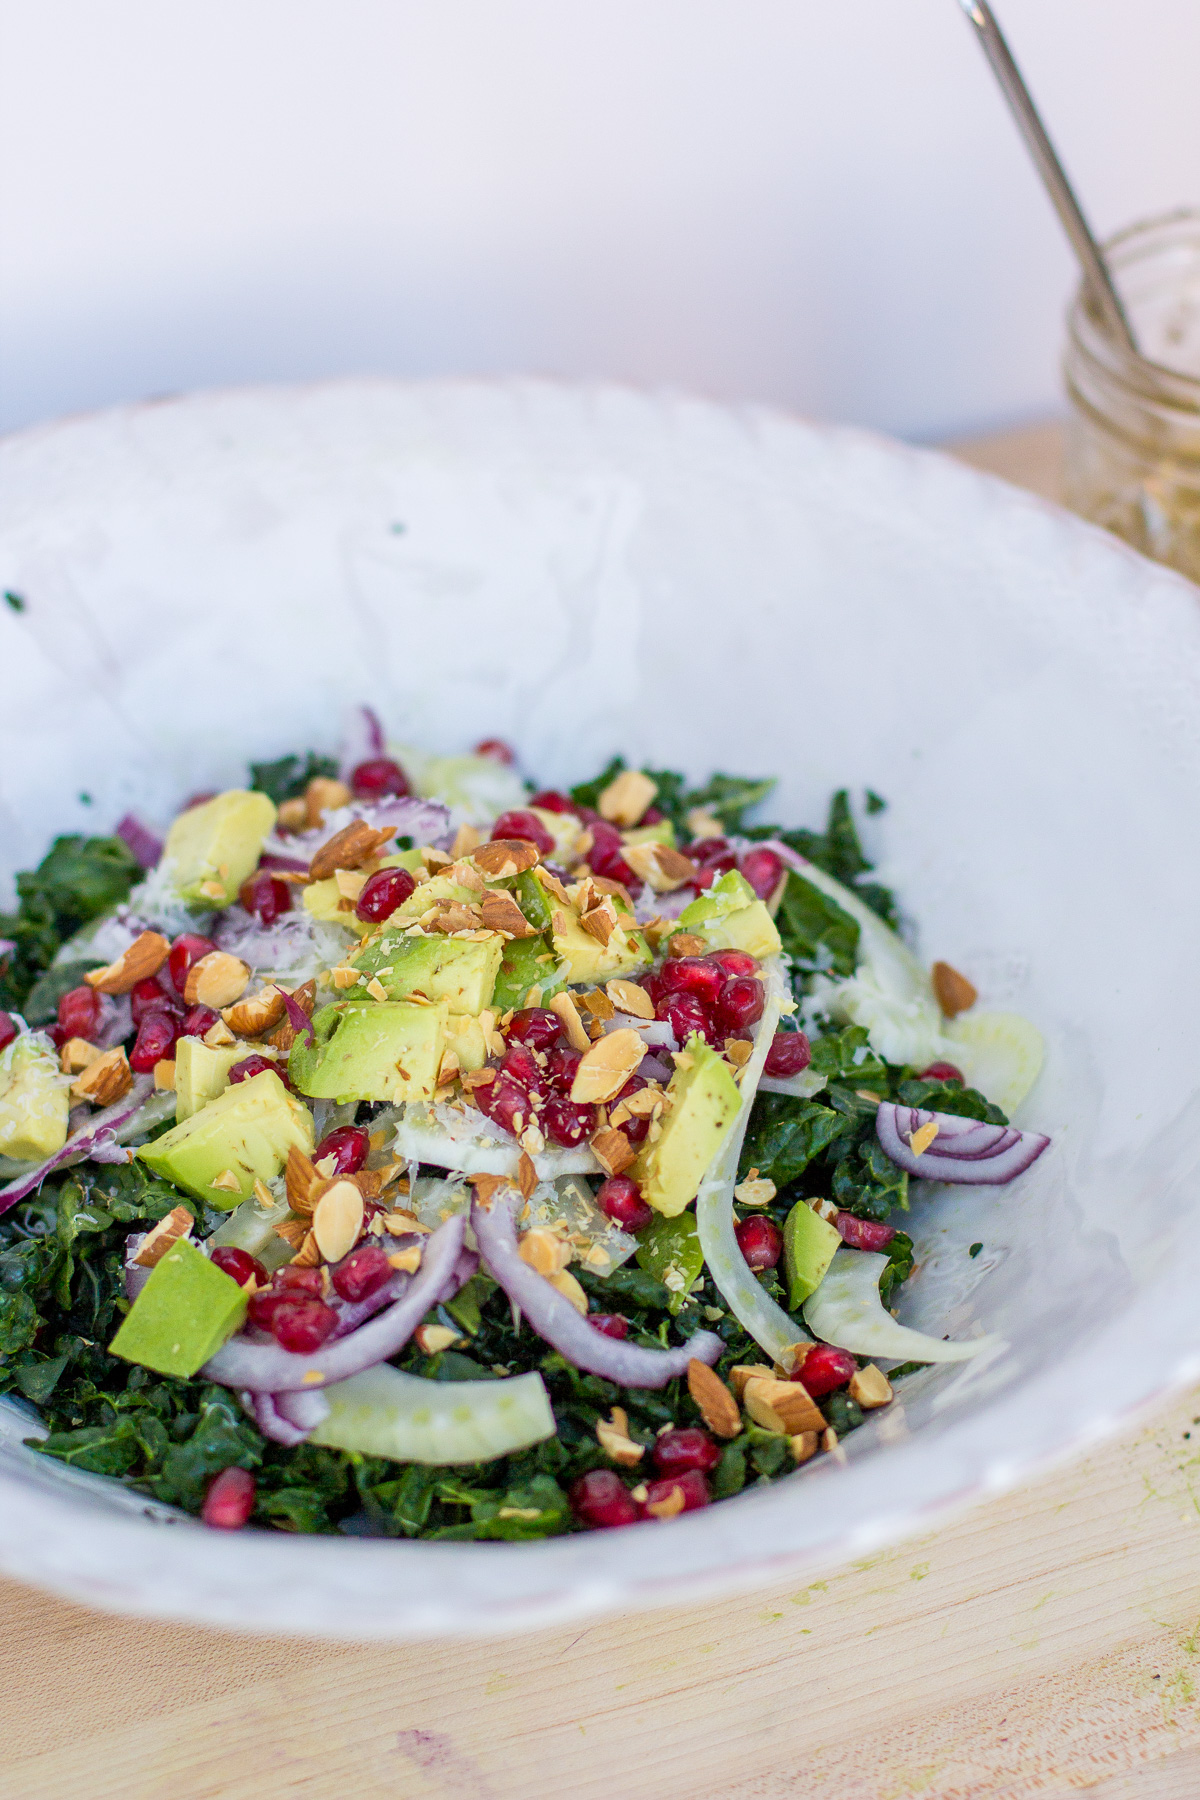 kale salad recipe, massaged kale, healthy cooking, wandeleur, simple recipes